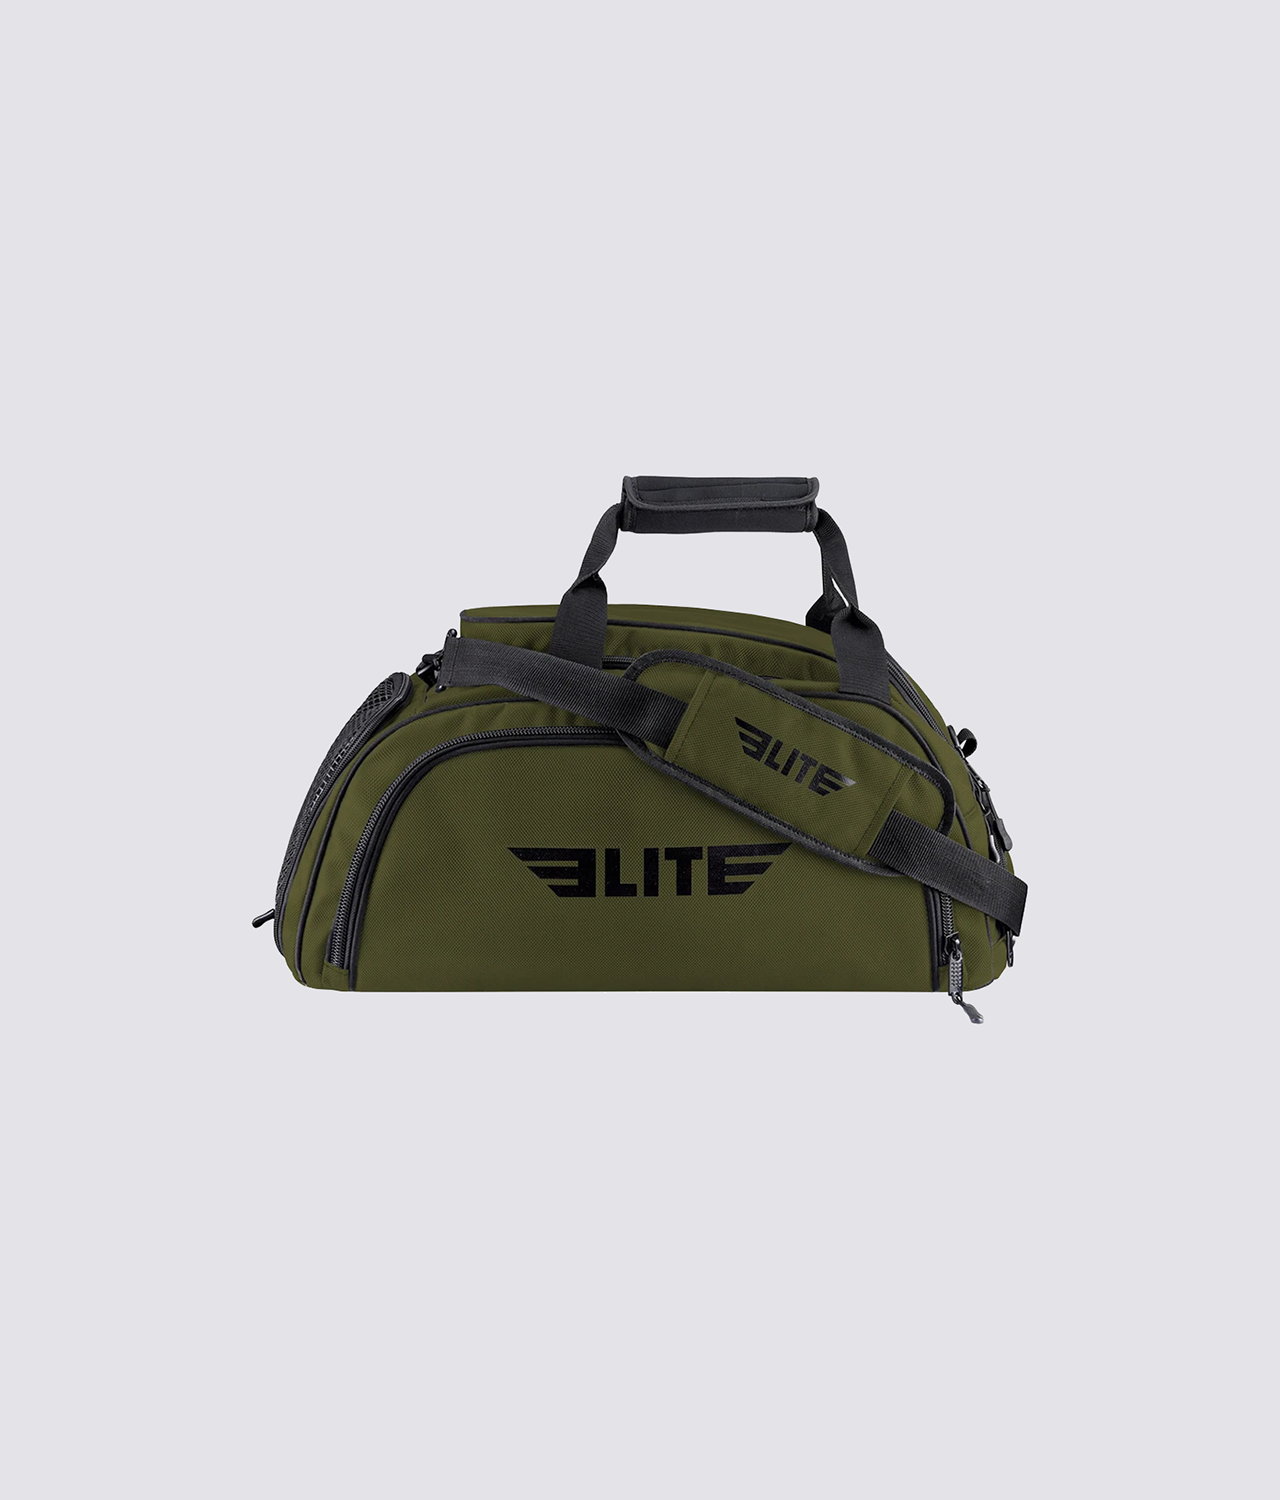 Elite Sports Warrior Series Military Green Large Duffel Muay Thai Gear Gym Bag & Backpack